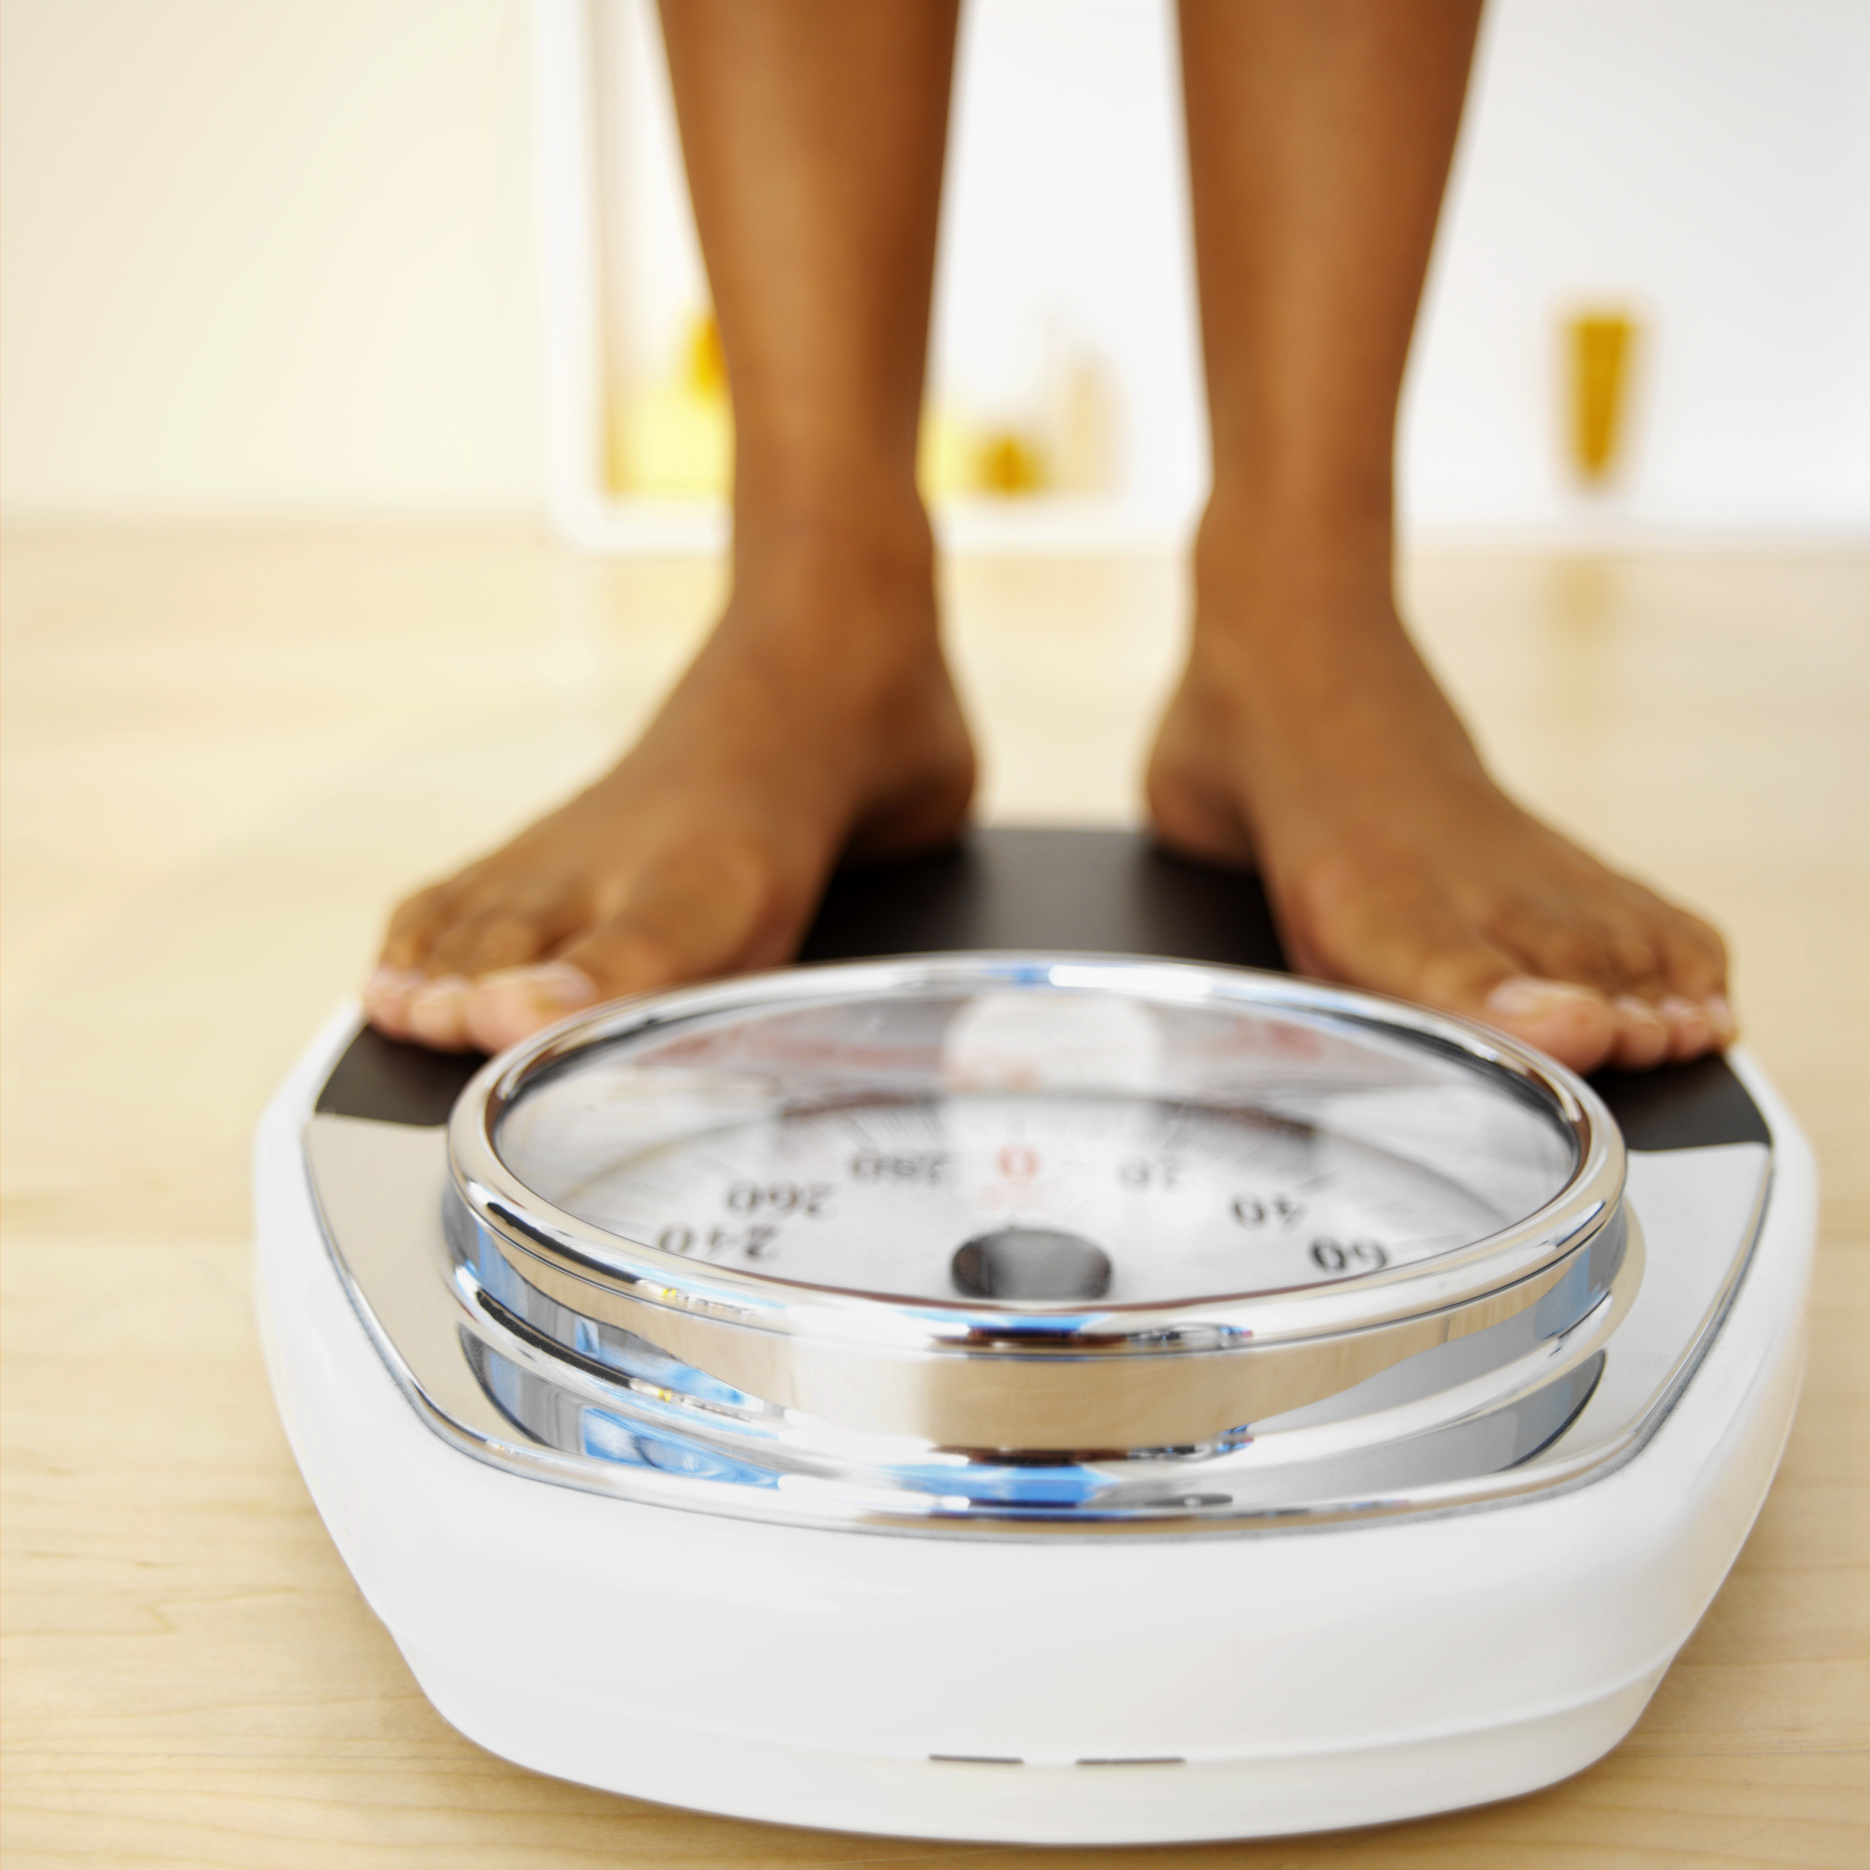 modest weight loss yields health benefits